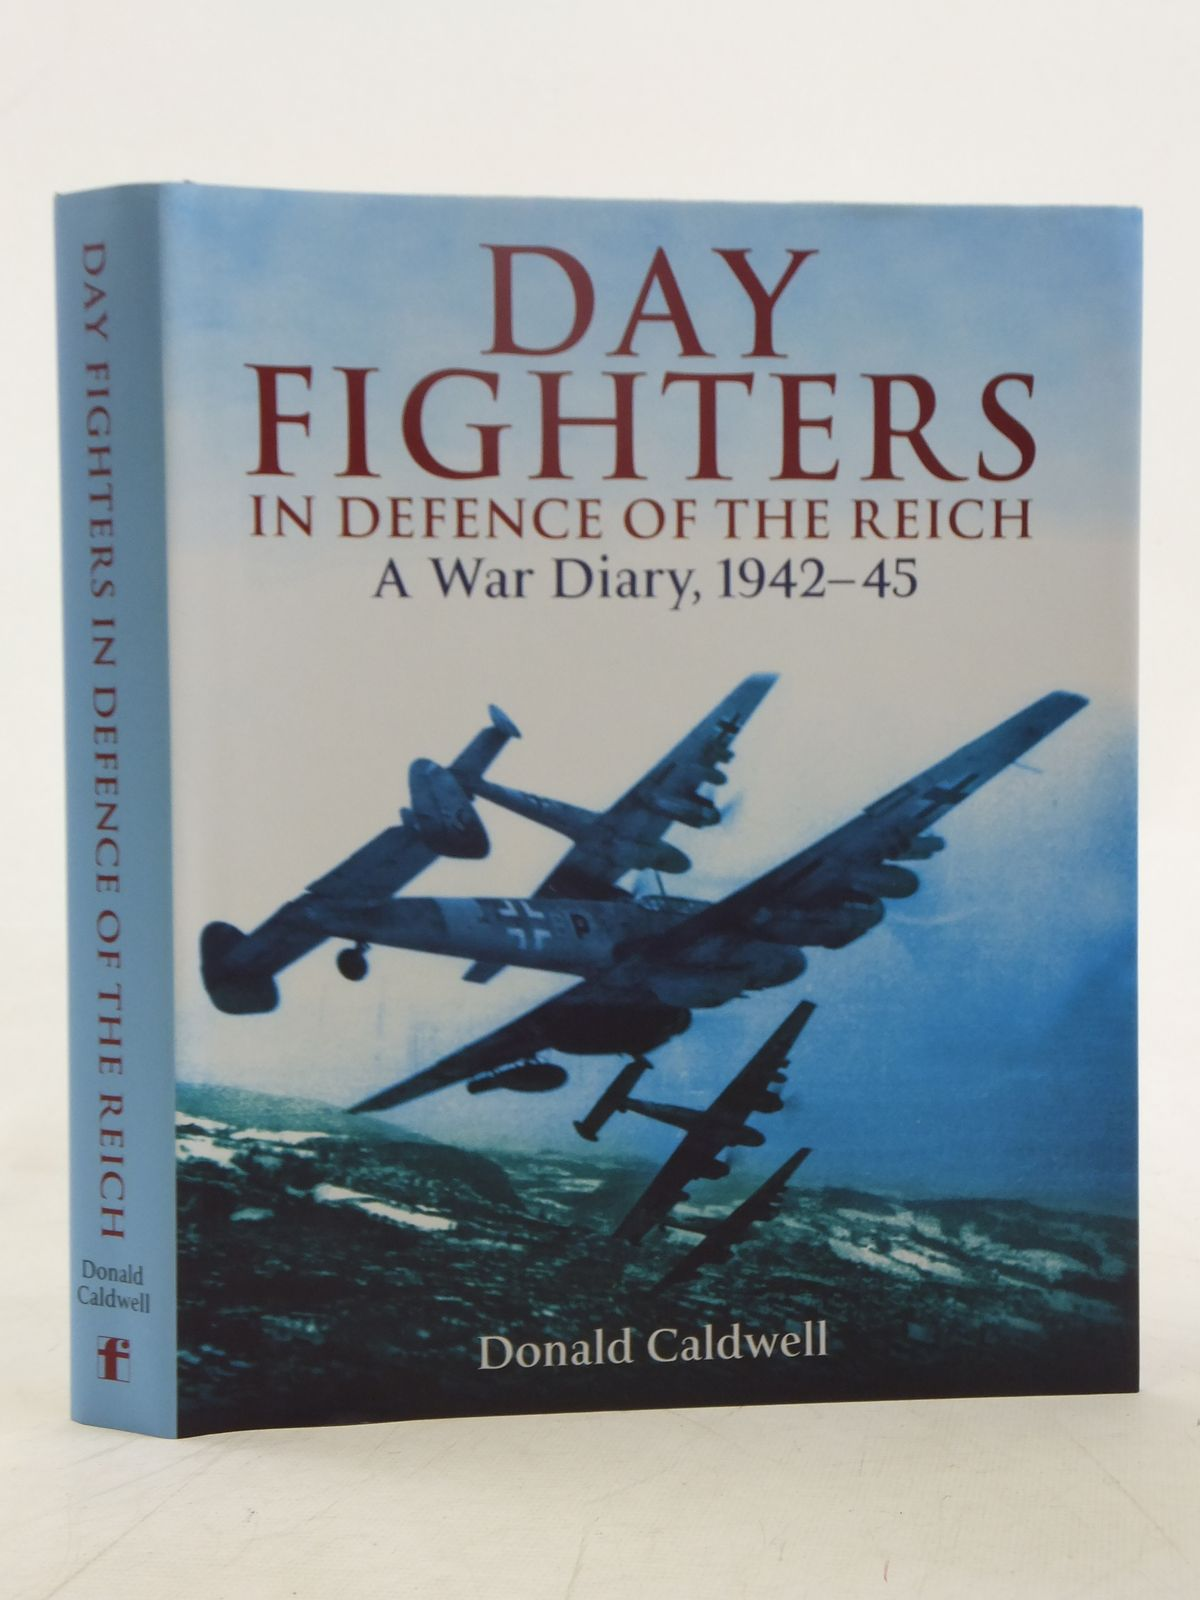 Photo of DAY FIGHTERS IN DEFENCE OF THE REICH A WAR DIARY, 1942-45 written by Caldwell, Donald published by Frontline Books (STOCK CODE: 2118126)  for sale by Stella & Rose's Books